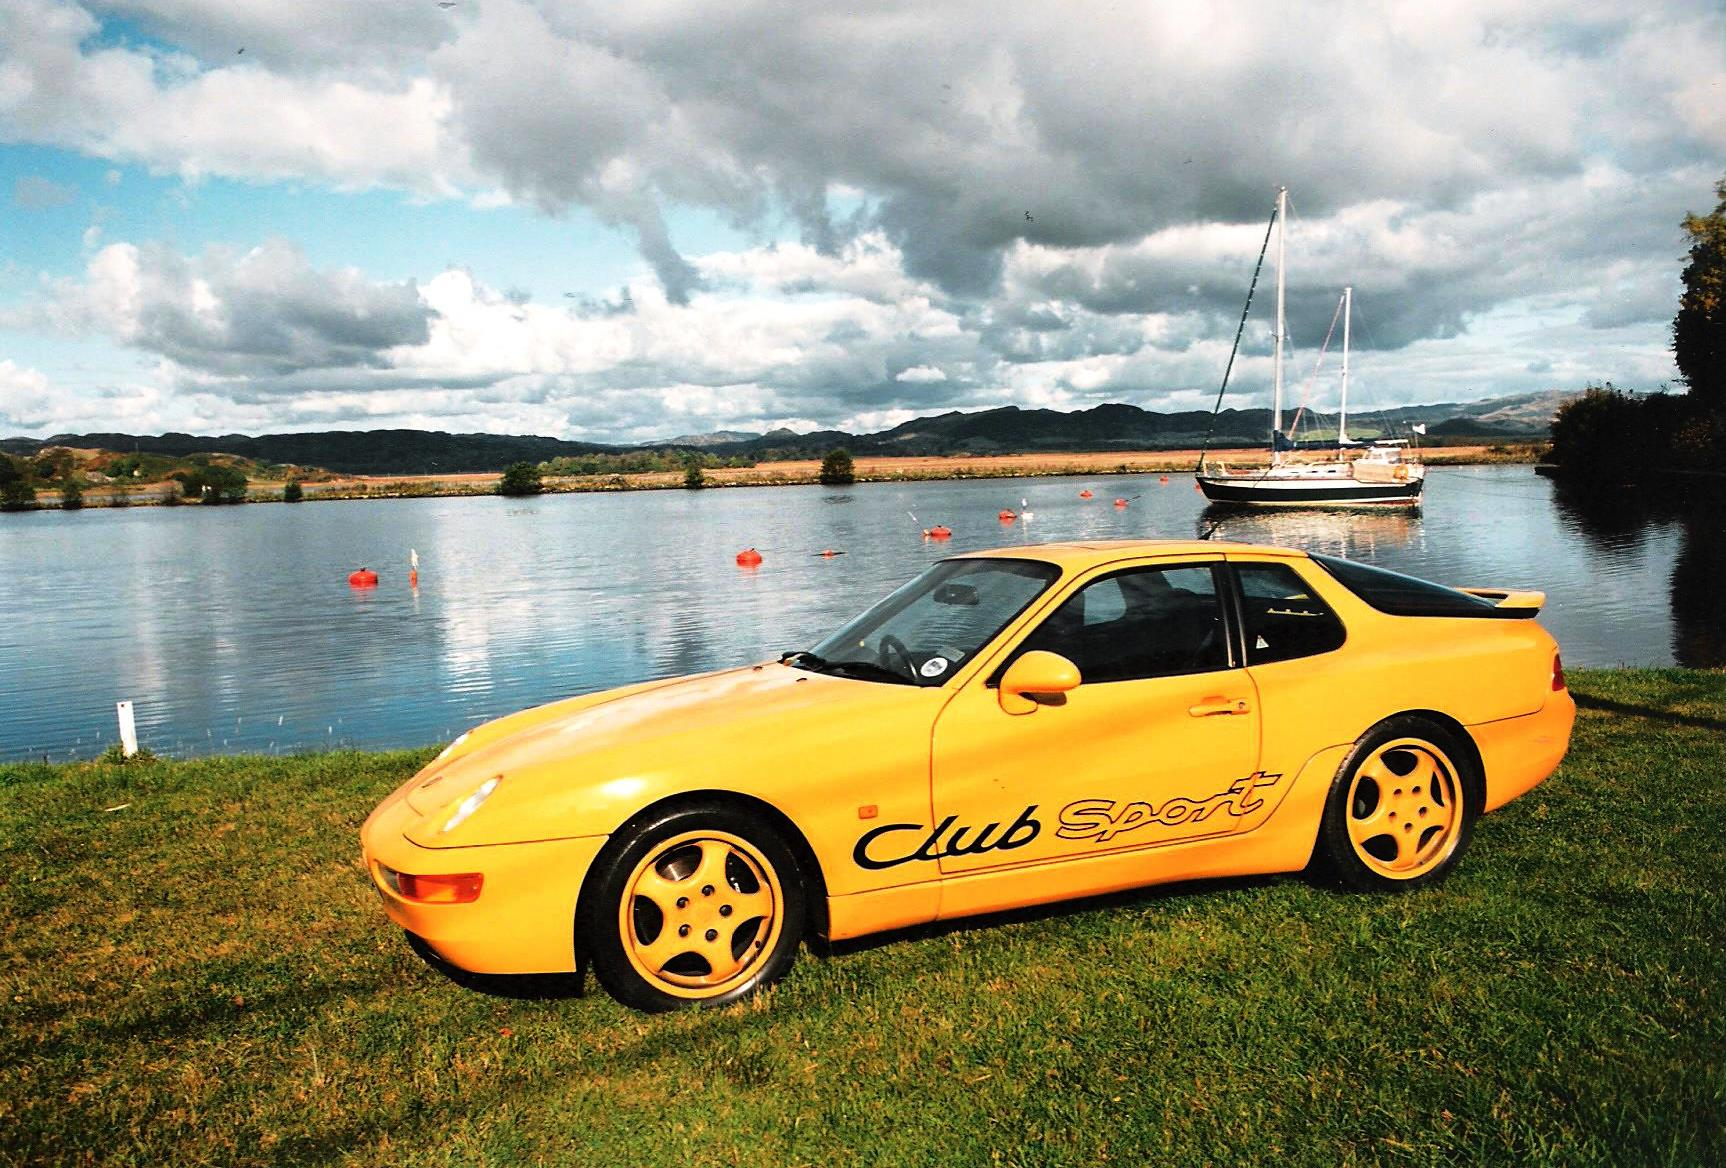 I took the Porsche to one of my favourite places in the world, Crinan on the West Coast of Scotland. Here it is by the yacht basin at Bellanoch on the Crinan Canal.